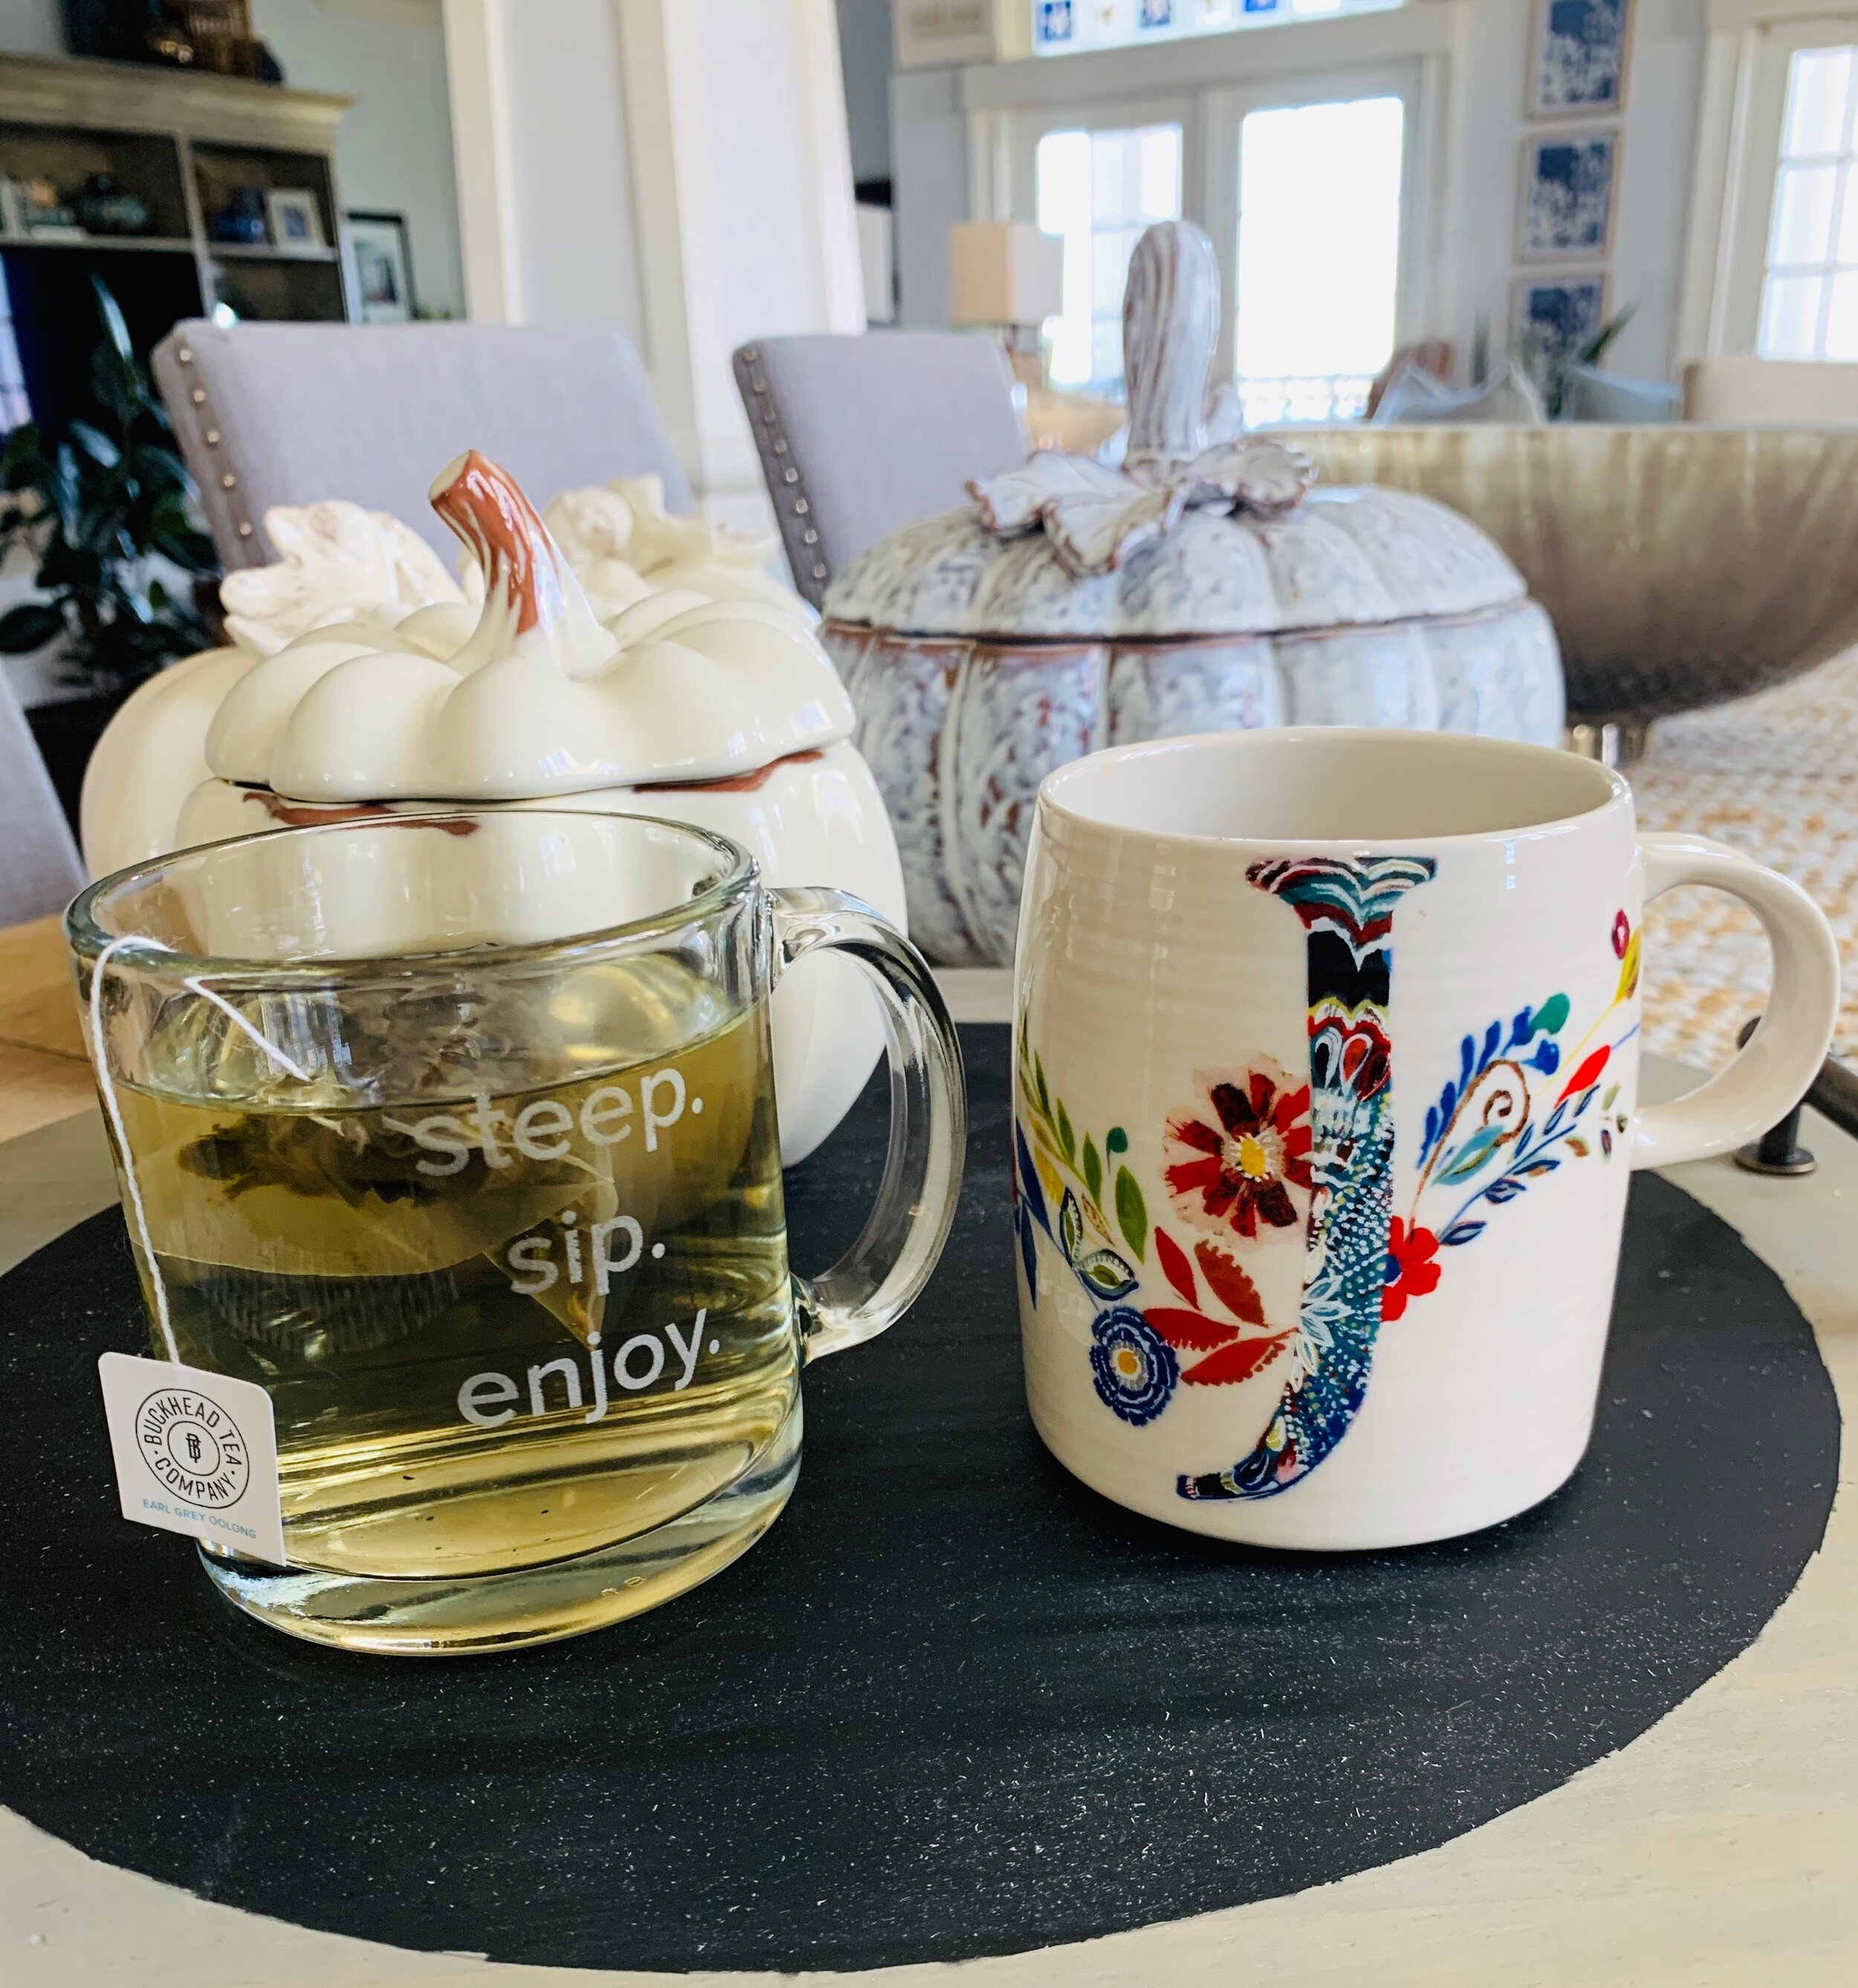 Tea cup on the left. Coffee cup gift on the right (Thanks Angie!)